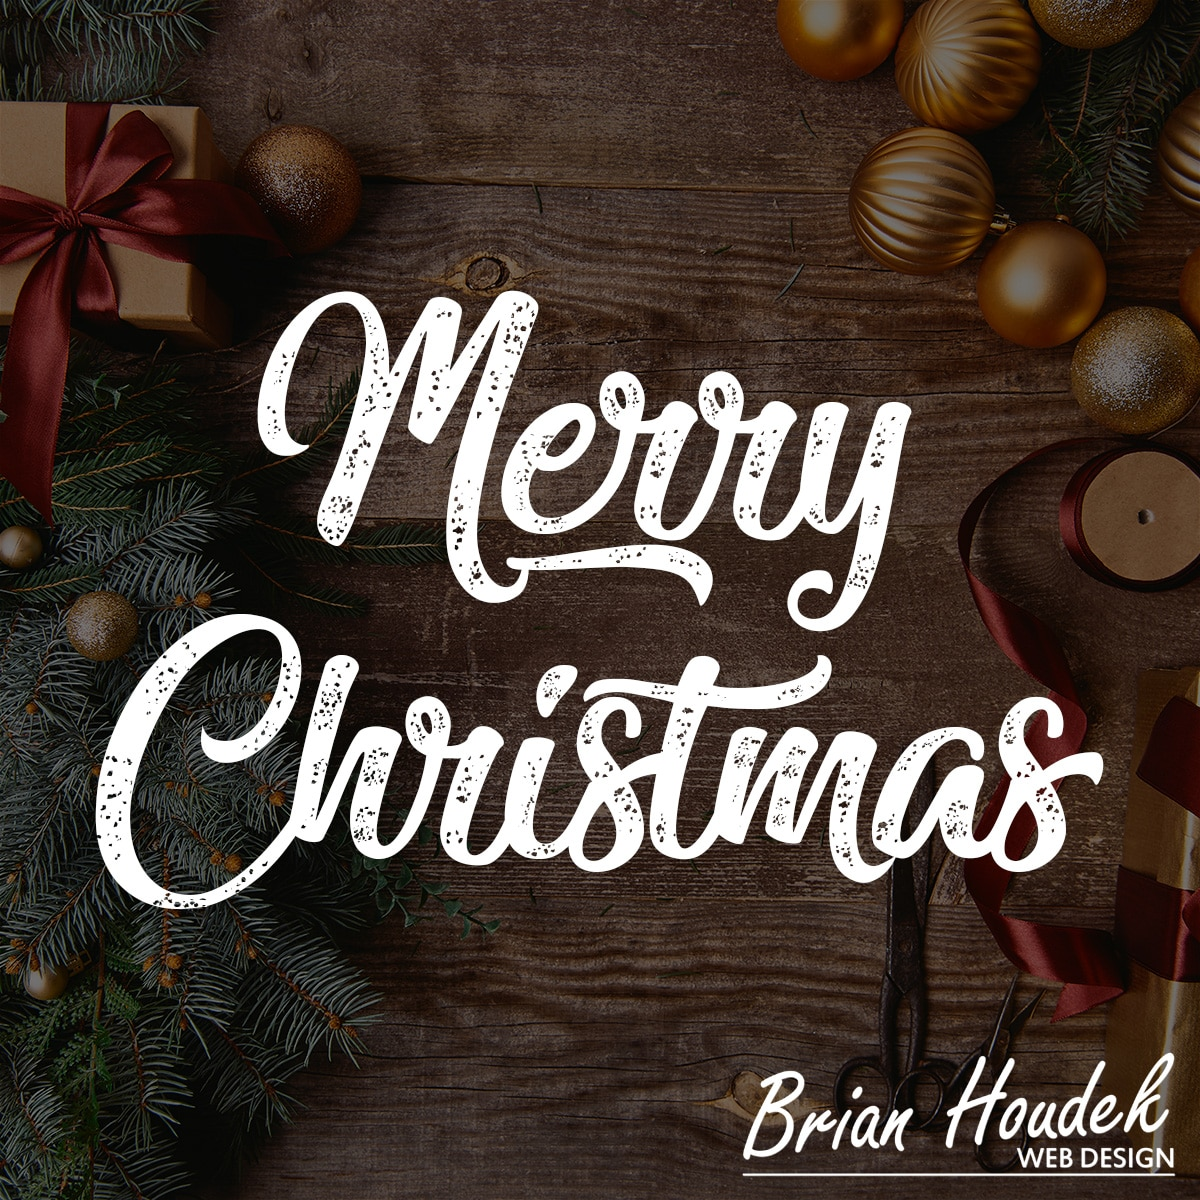 Merry Christmas From Brian Houdek Web Design